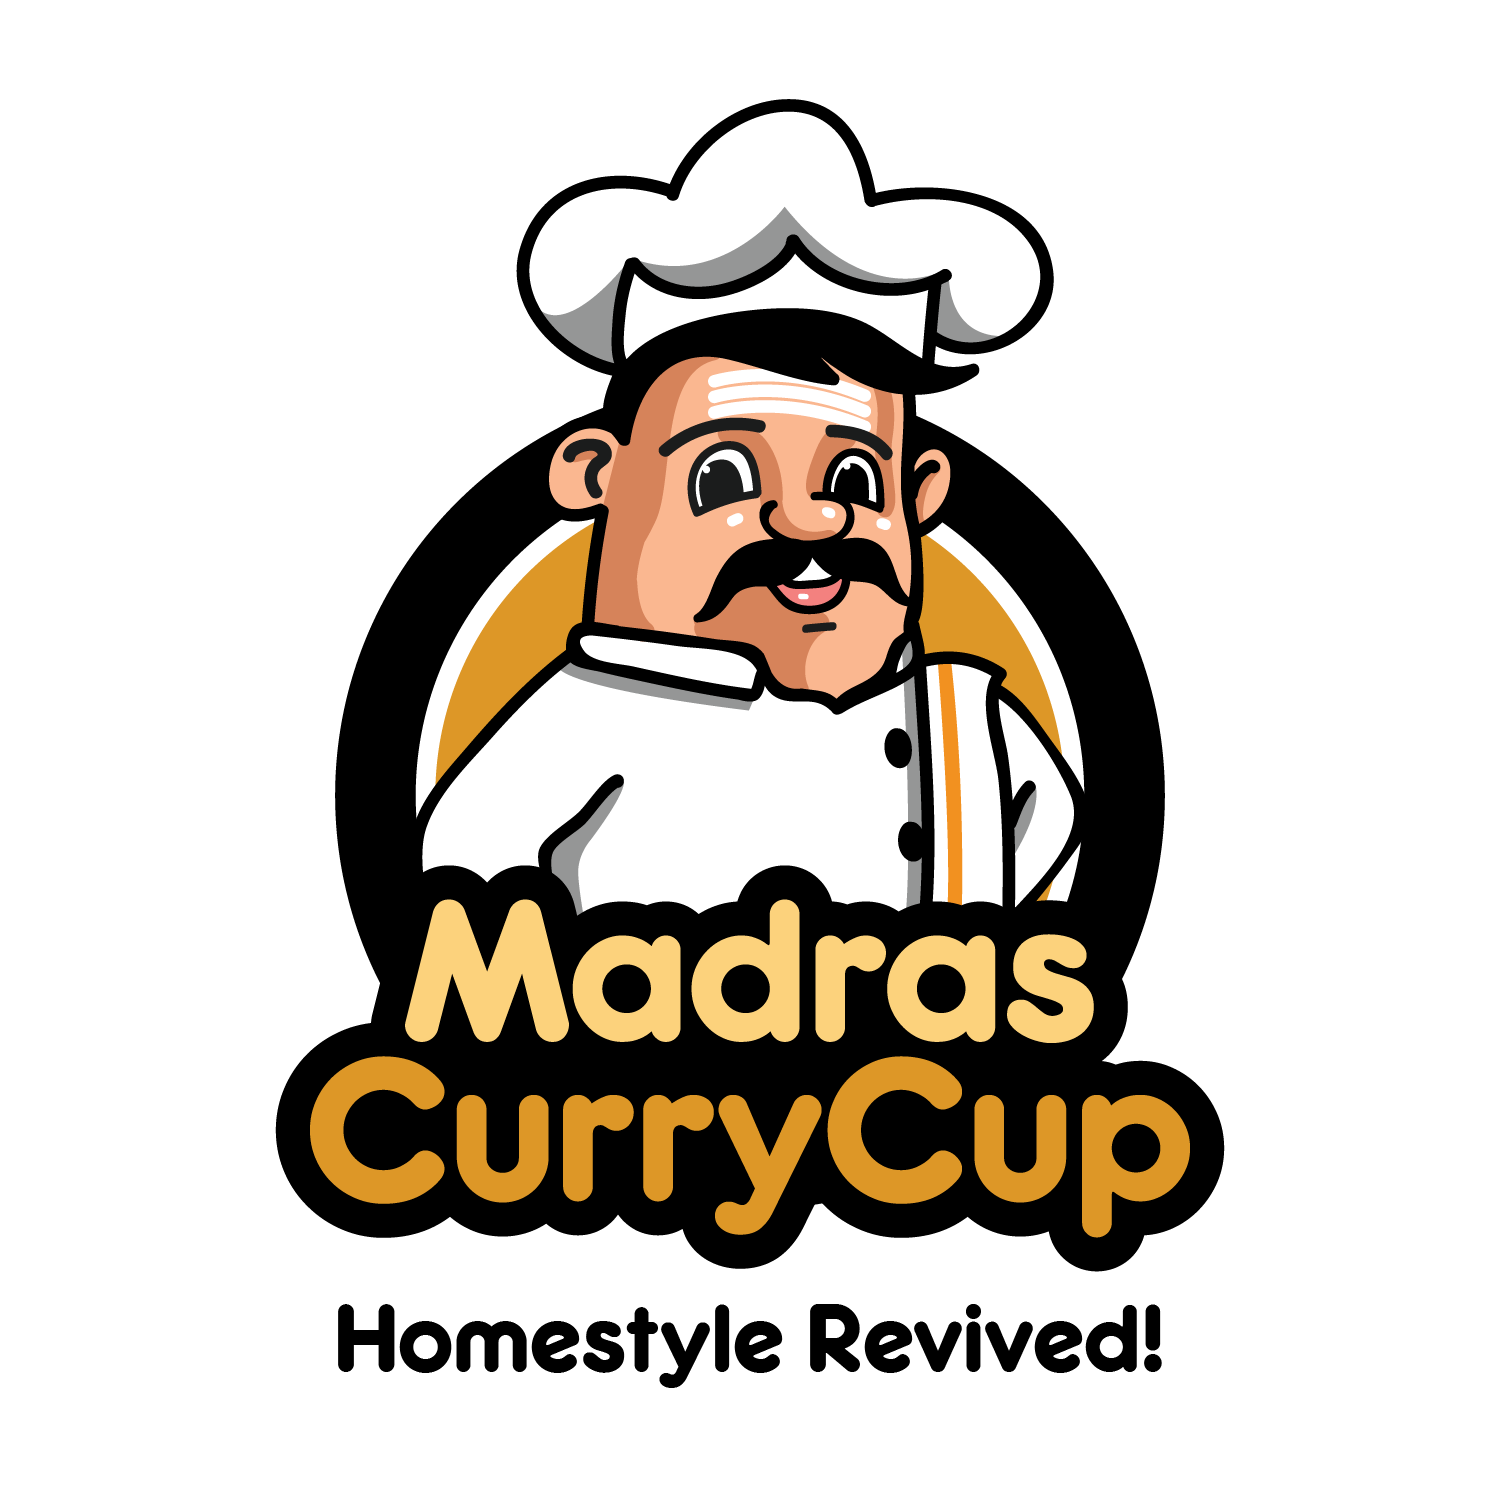 Image for South Indian Restaurant in Chennai - Madras Curry Cup